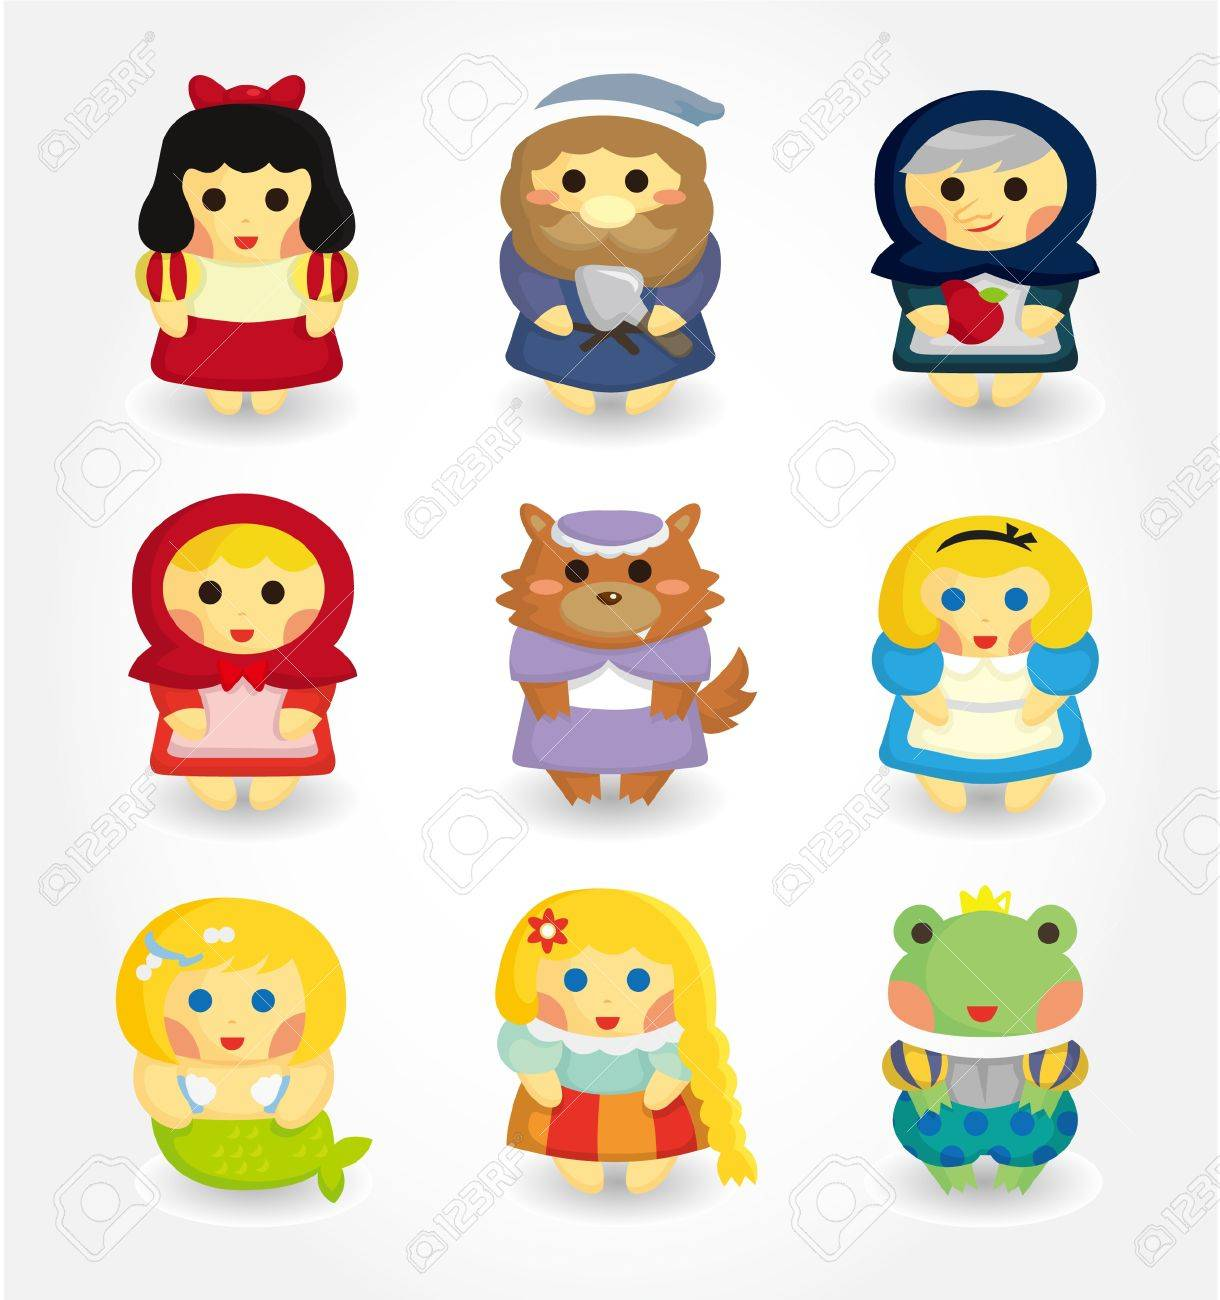 cartoon story people icon set Stock Vector - 9935333